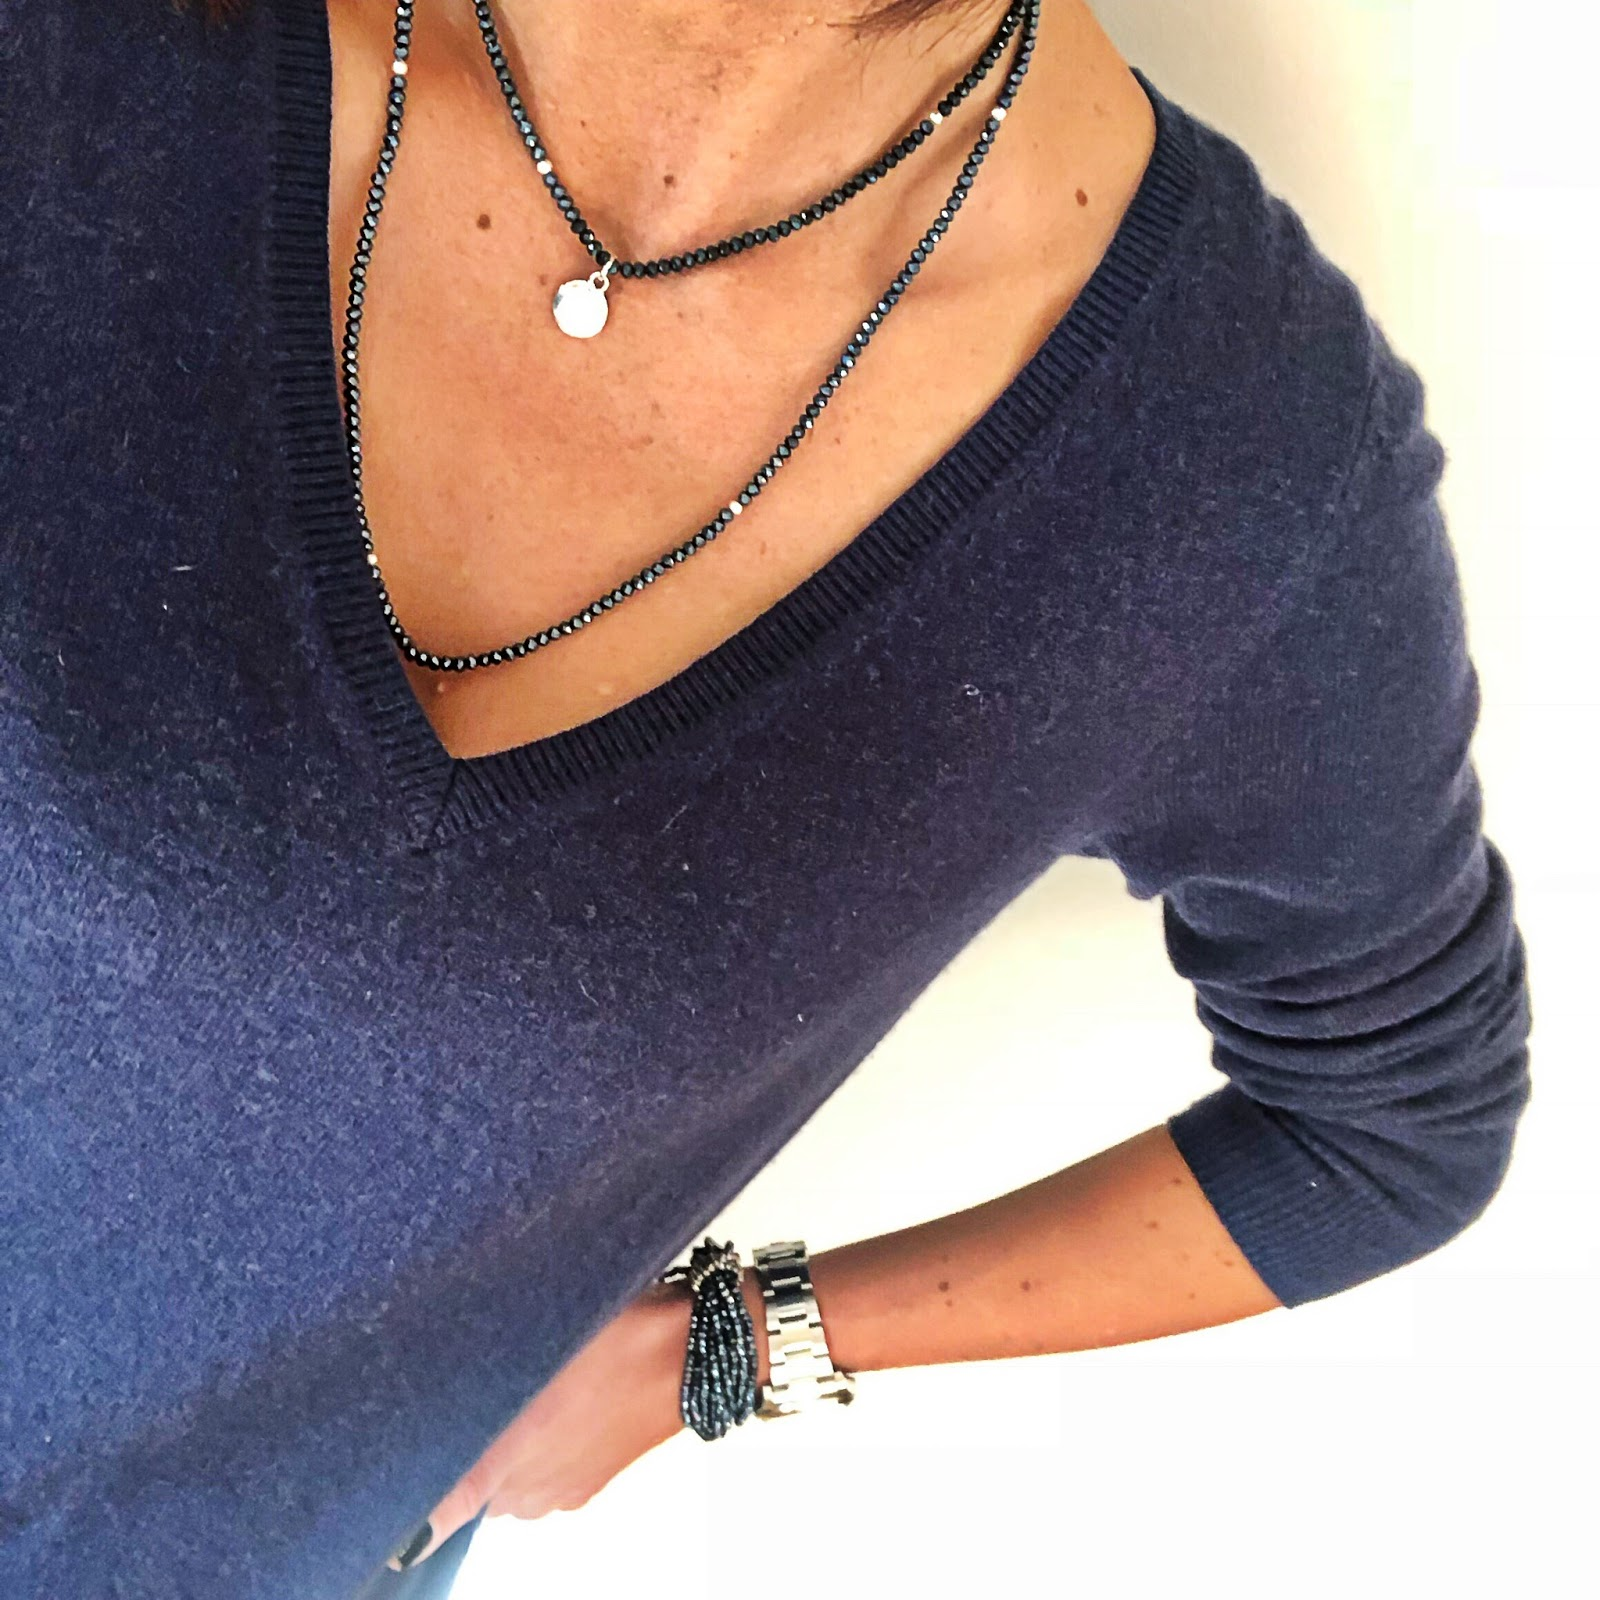 my midlife fashion, olia jewellery, olia jewellery drew necklace, olia jewellery grace bracelets, boden cashmere relaxed fit v neck jumper, hush turn up boyfriend jeans, marks and spencer stiletto side zip ankle boots